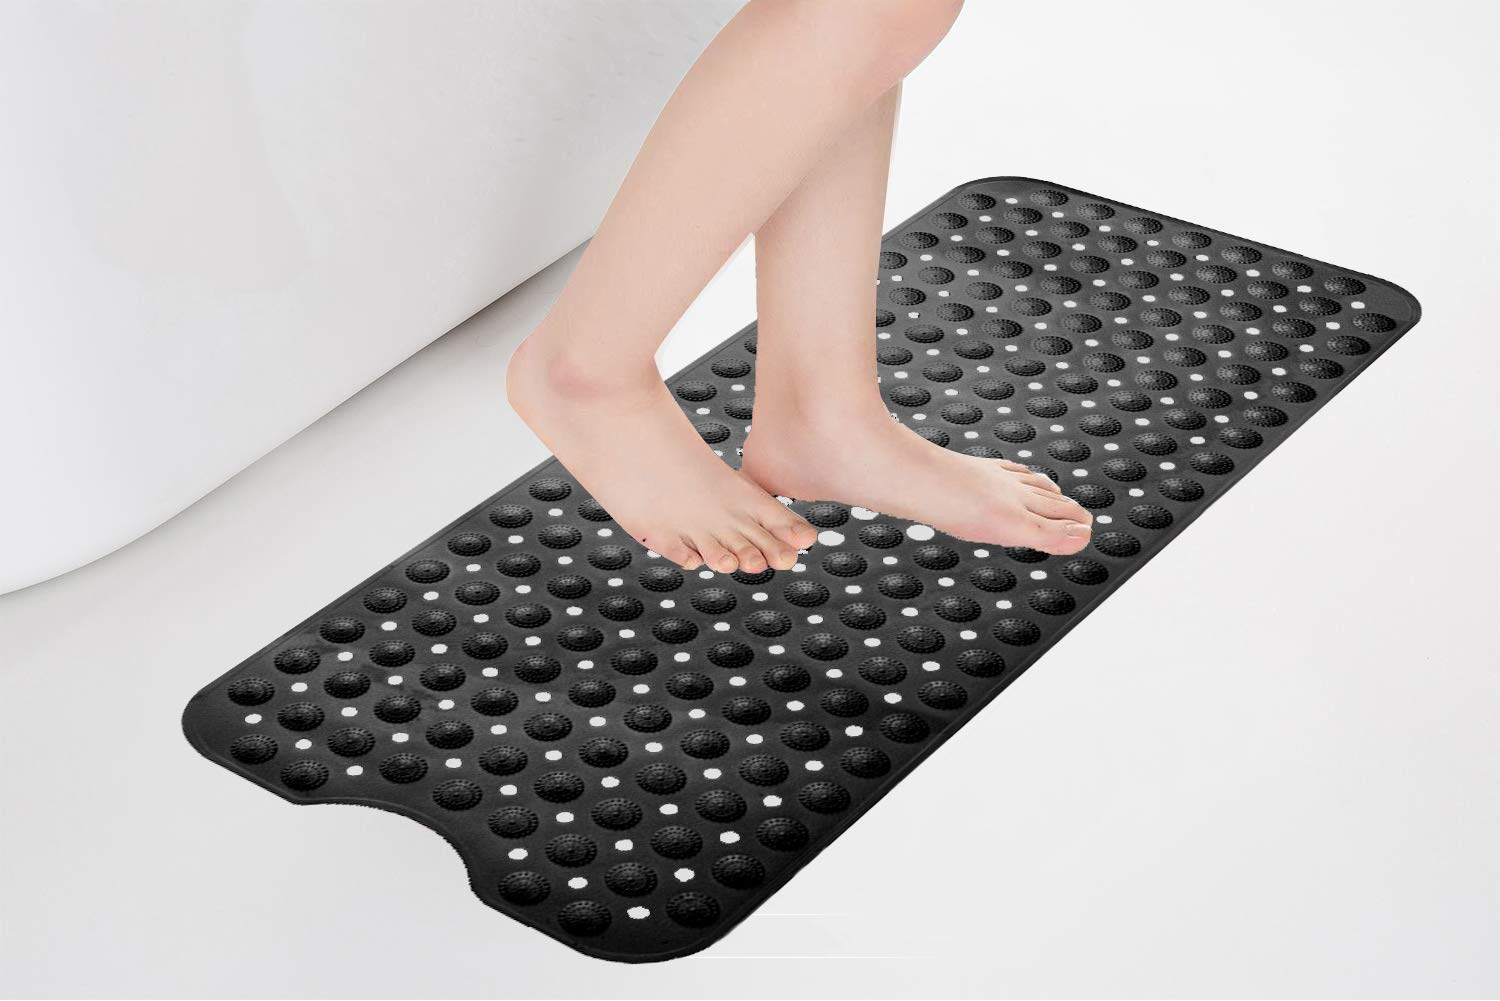 Safe Shower Mat with Drain Holes SONGZIMING Non-Slip Pebble Bathtub Mat Black 16 W x 35 L Inches Suction Cups for Bathroom for Smooth//Non-Textured Tubs Only